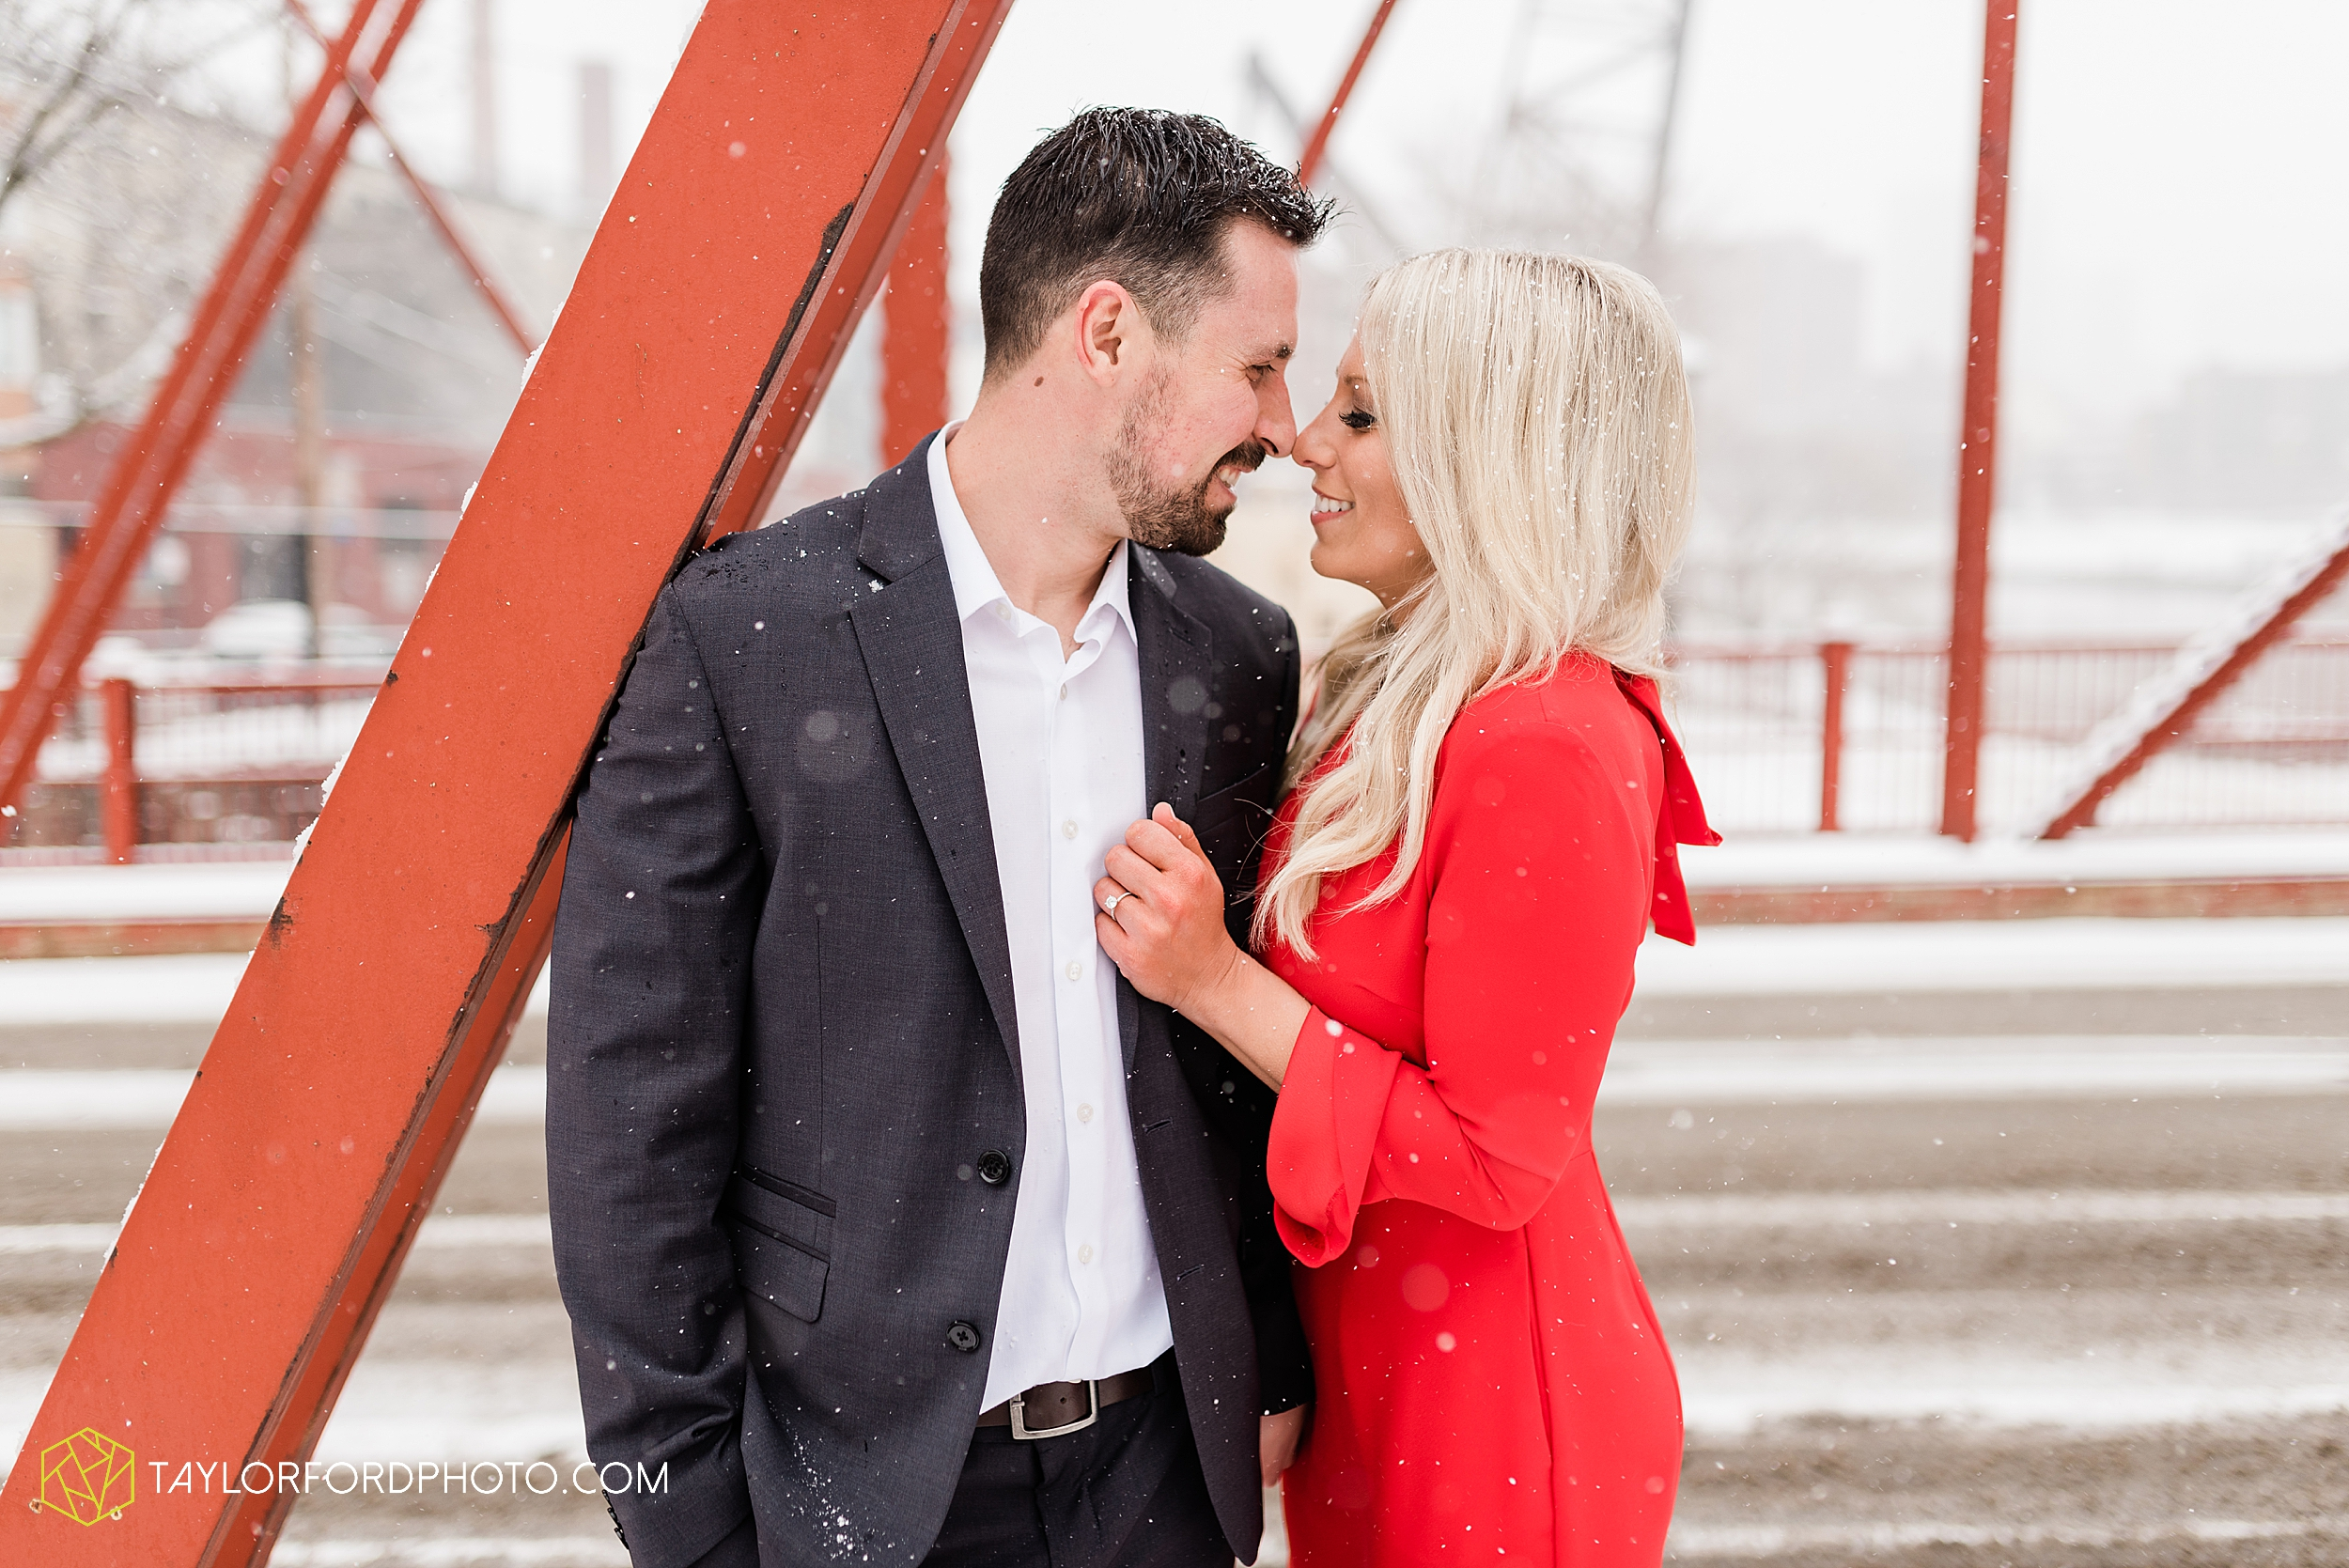 brittany-phil-downtown-cleveland-viaduct-the-flats-east-bank-rocky-river-reservation-engagement-photography-taylor-ford-hirschy-photographer_2426.jpg